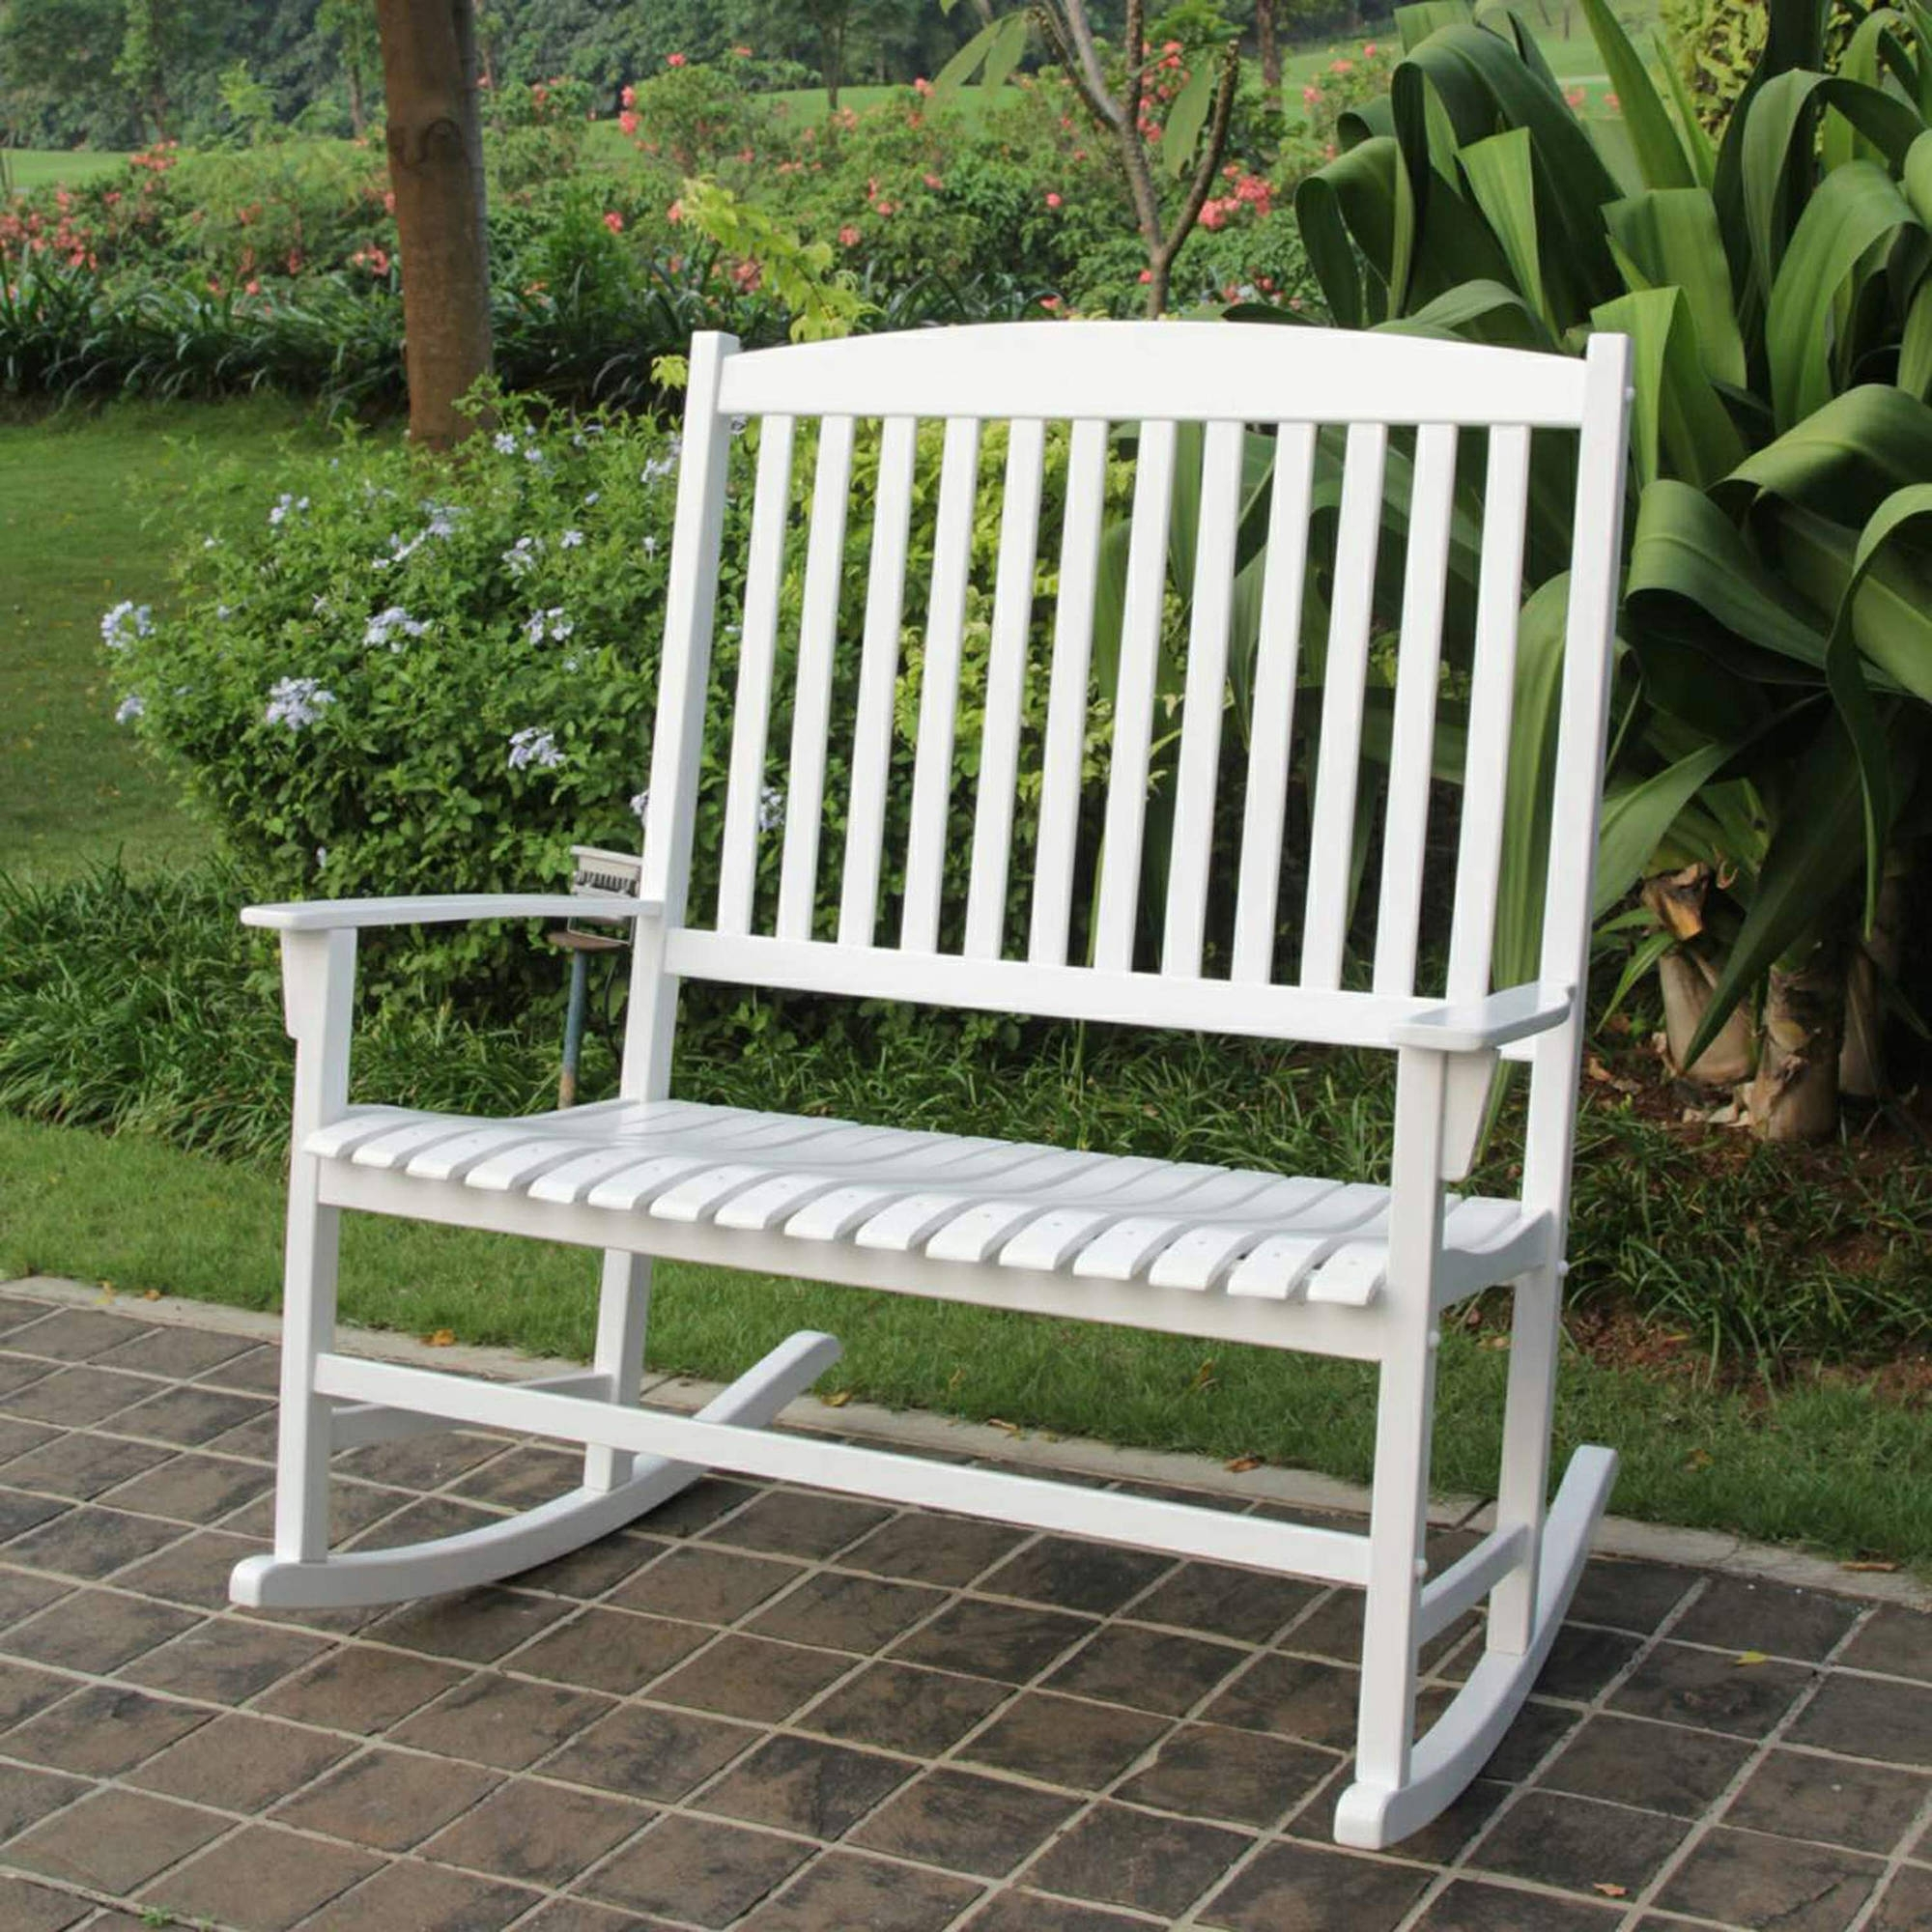 Inspiration about Patio Loveseat White Hardwood Outdoor Rocking Chair For 2 With Regard To White Patio Rocking Chairs (#4 of 15)